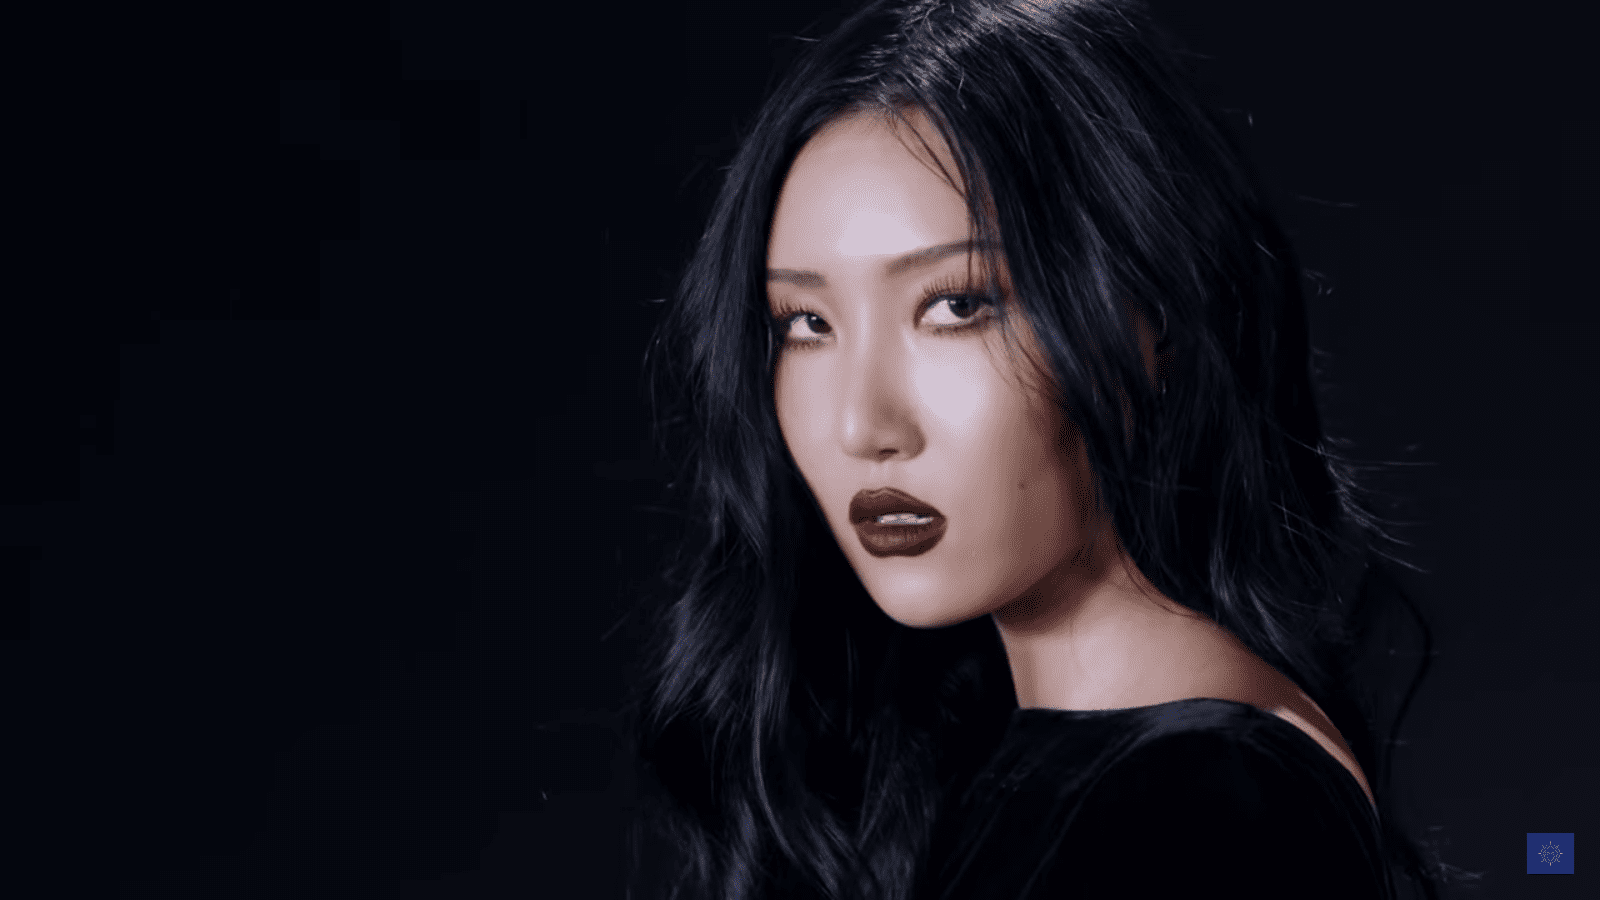 """WATCH: MAMAMOO's Hwasa Makes A Statement In """"TWIT"""" MV For Solo Debut"""